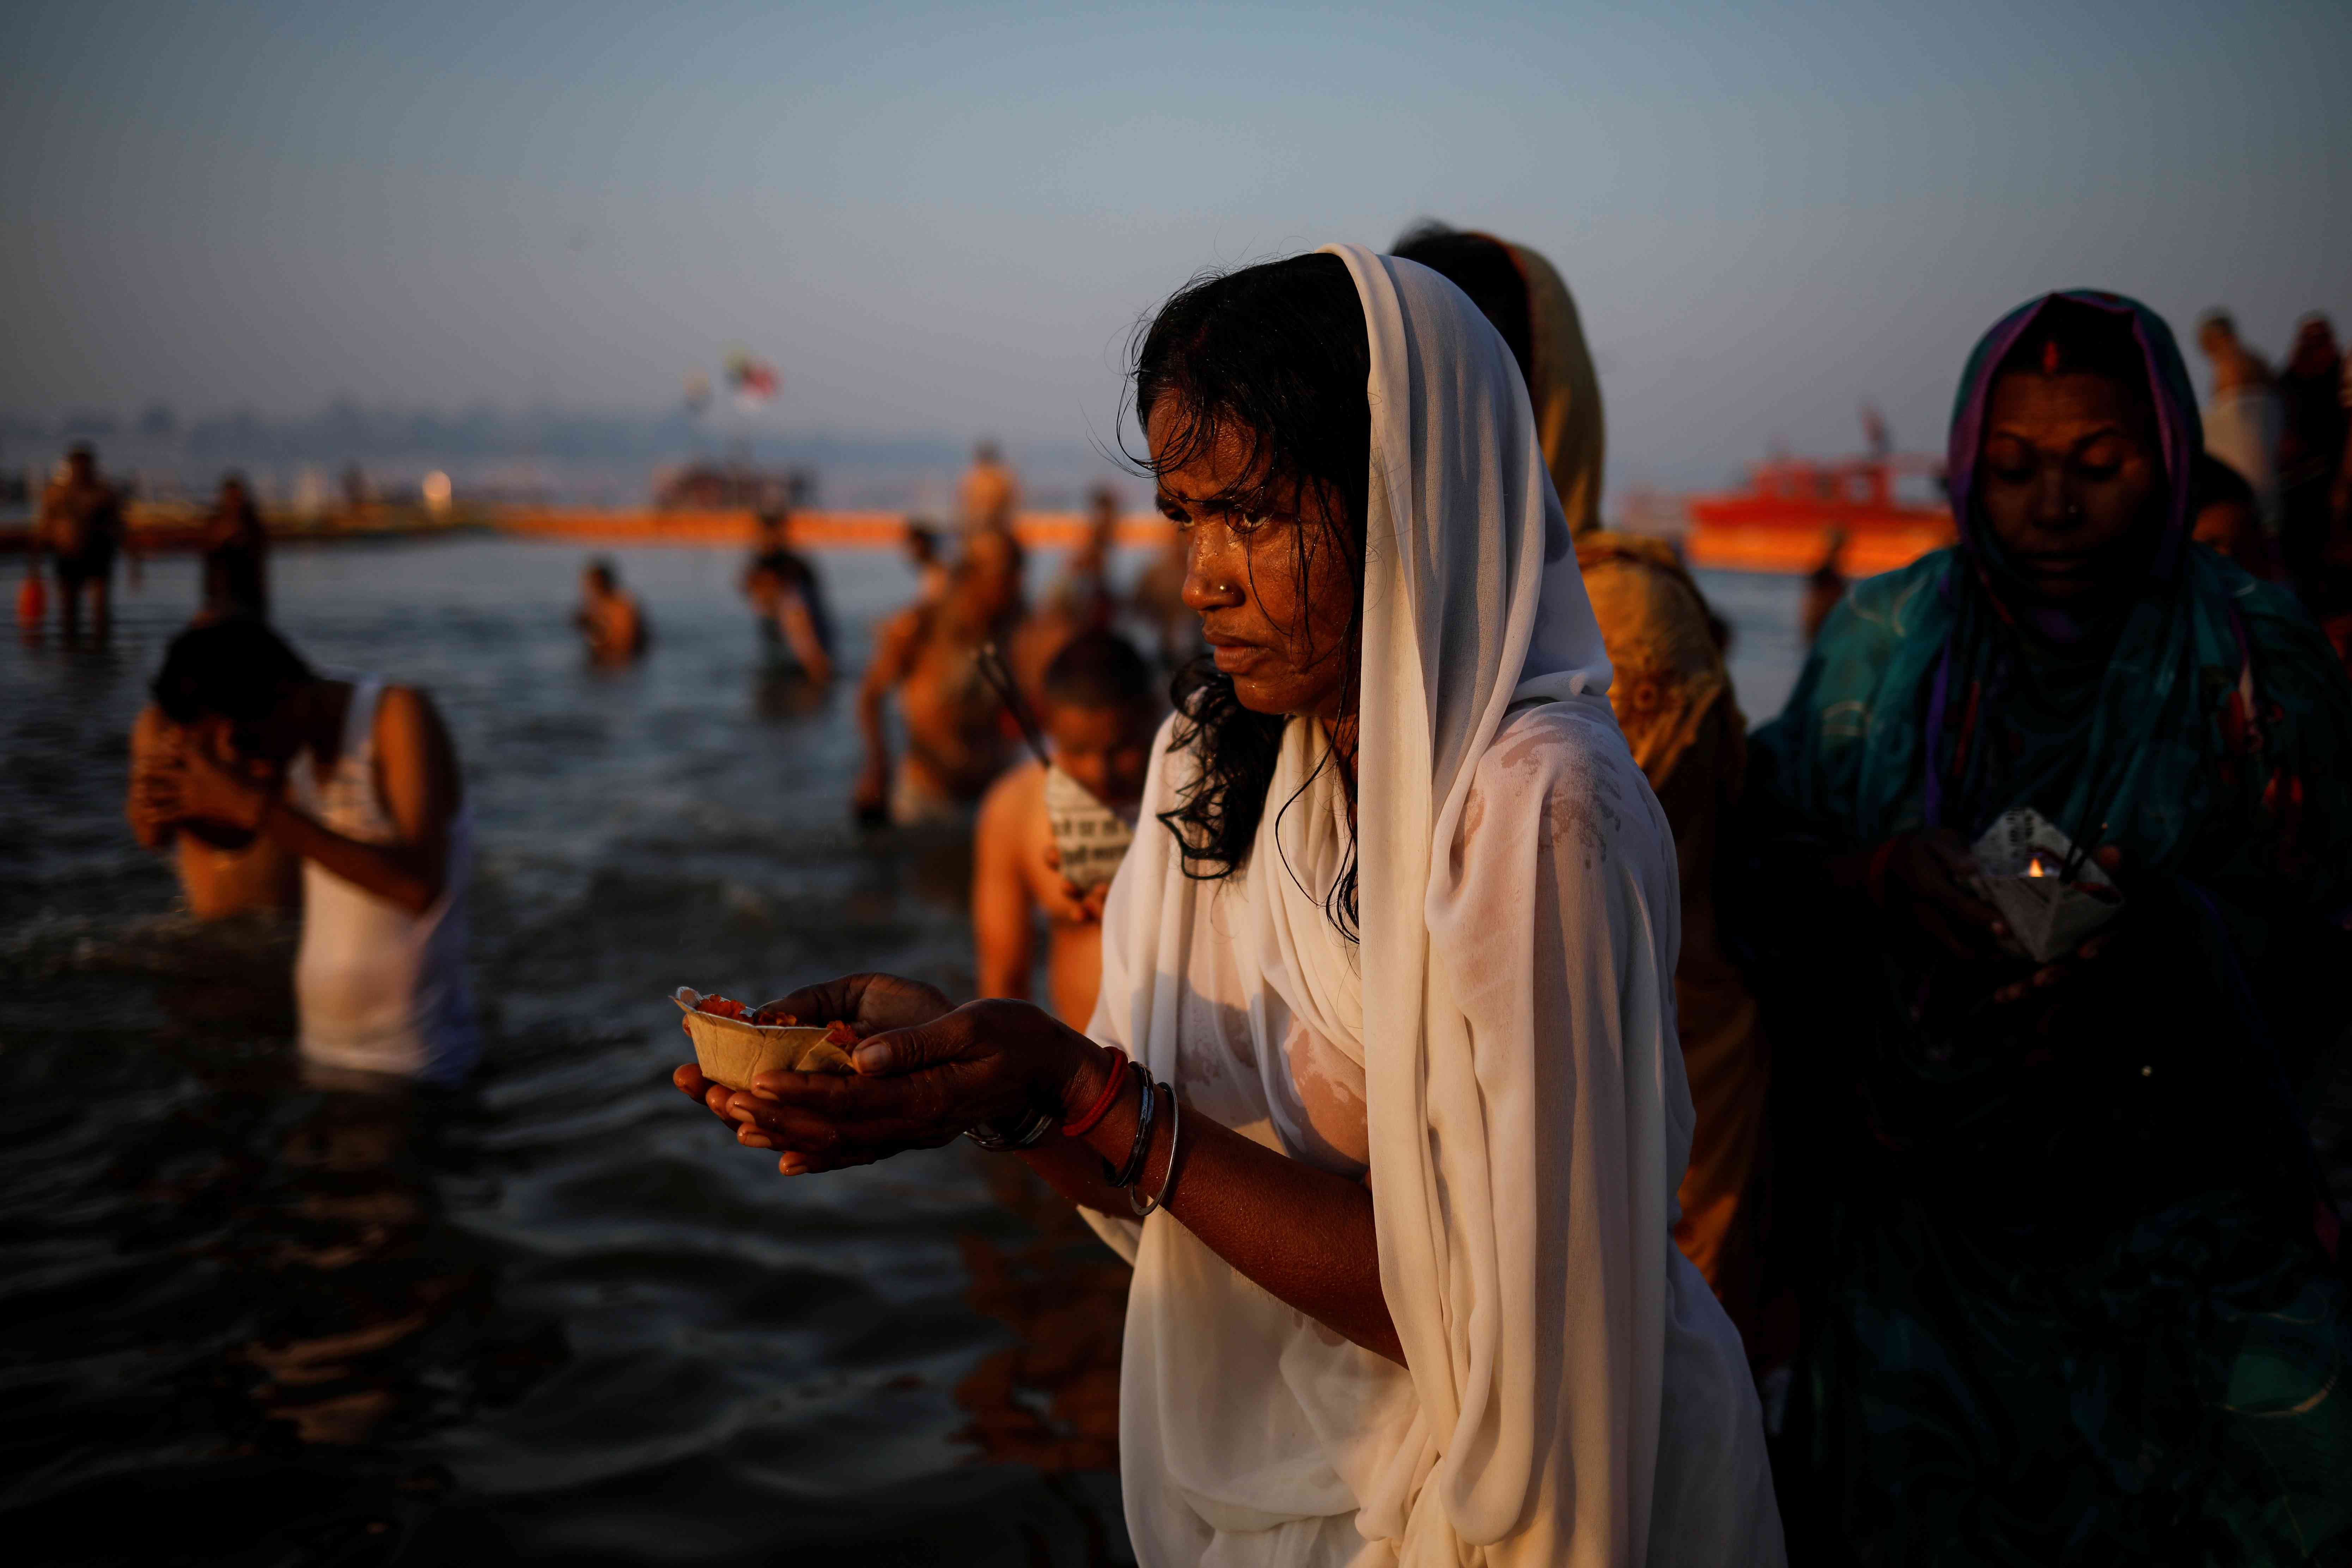 Hindu devotees pray after taking a holy dip during the Kumbh Mela. Photo credit: Reuters